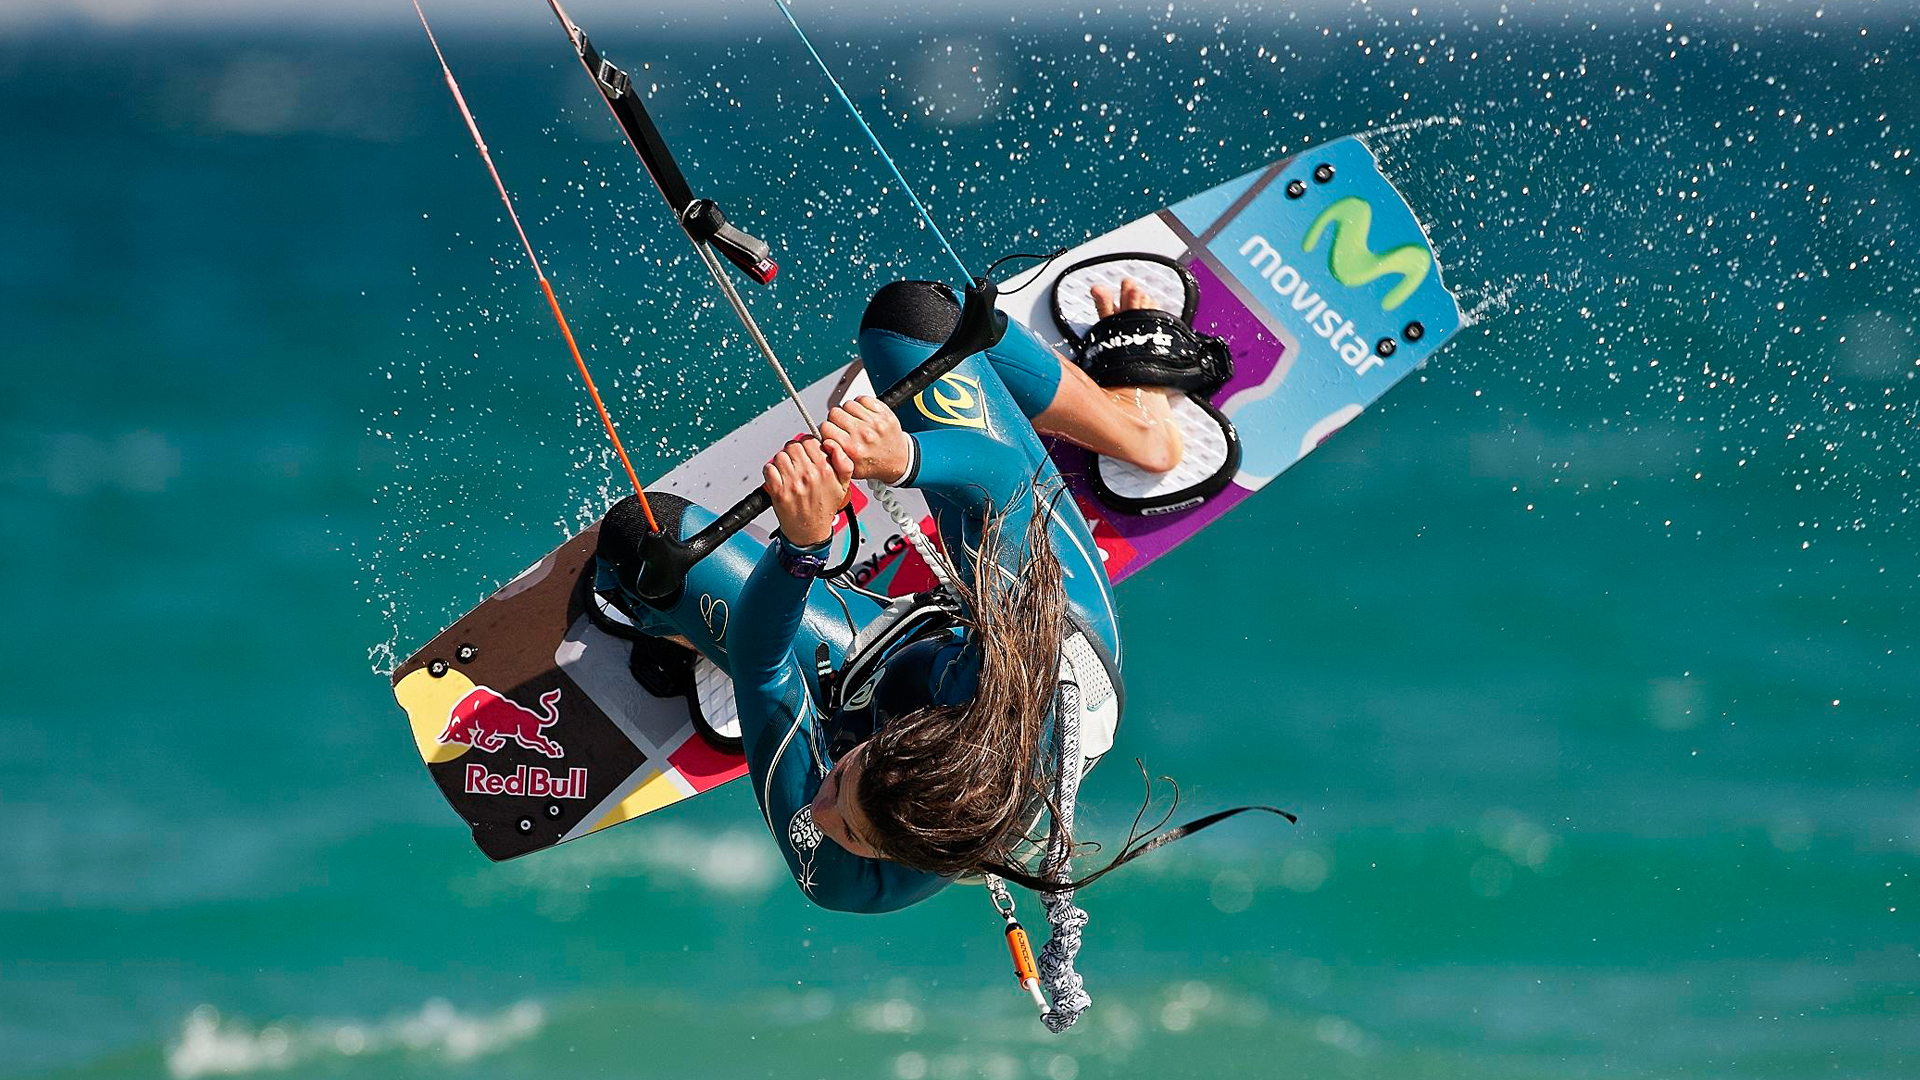 kitesurf wallpaper image - Gisela Pulido giving it all during contest - in resolution: High Definition - HD 16:9 1920 X 1080